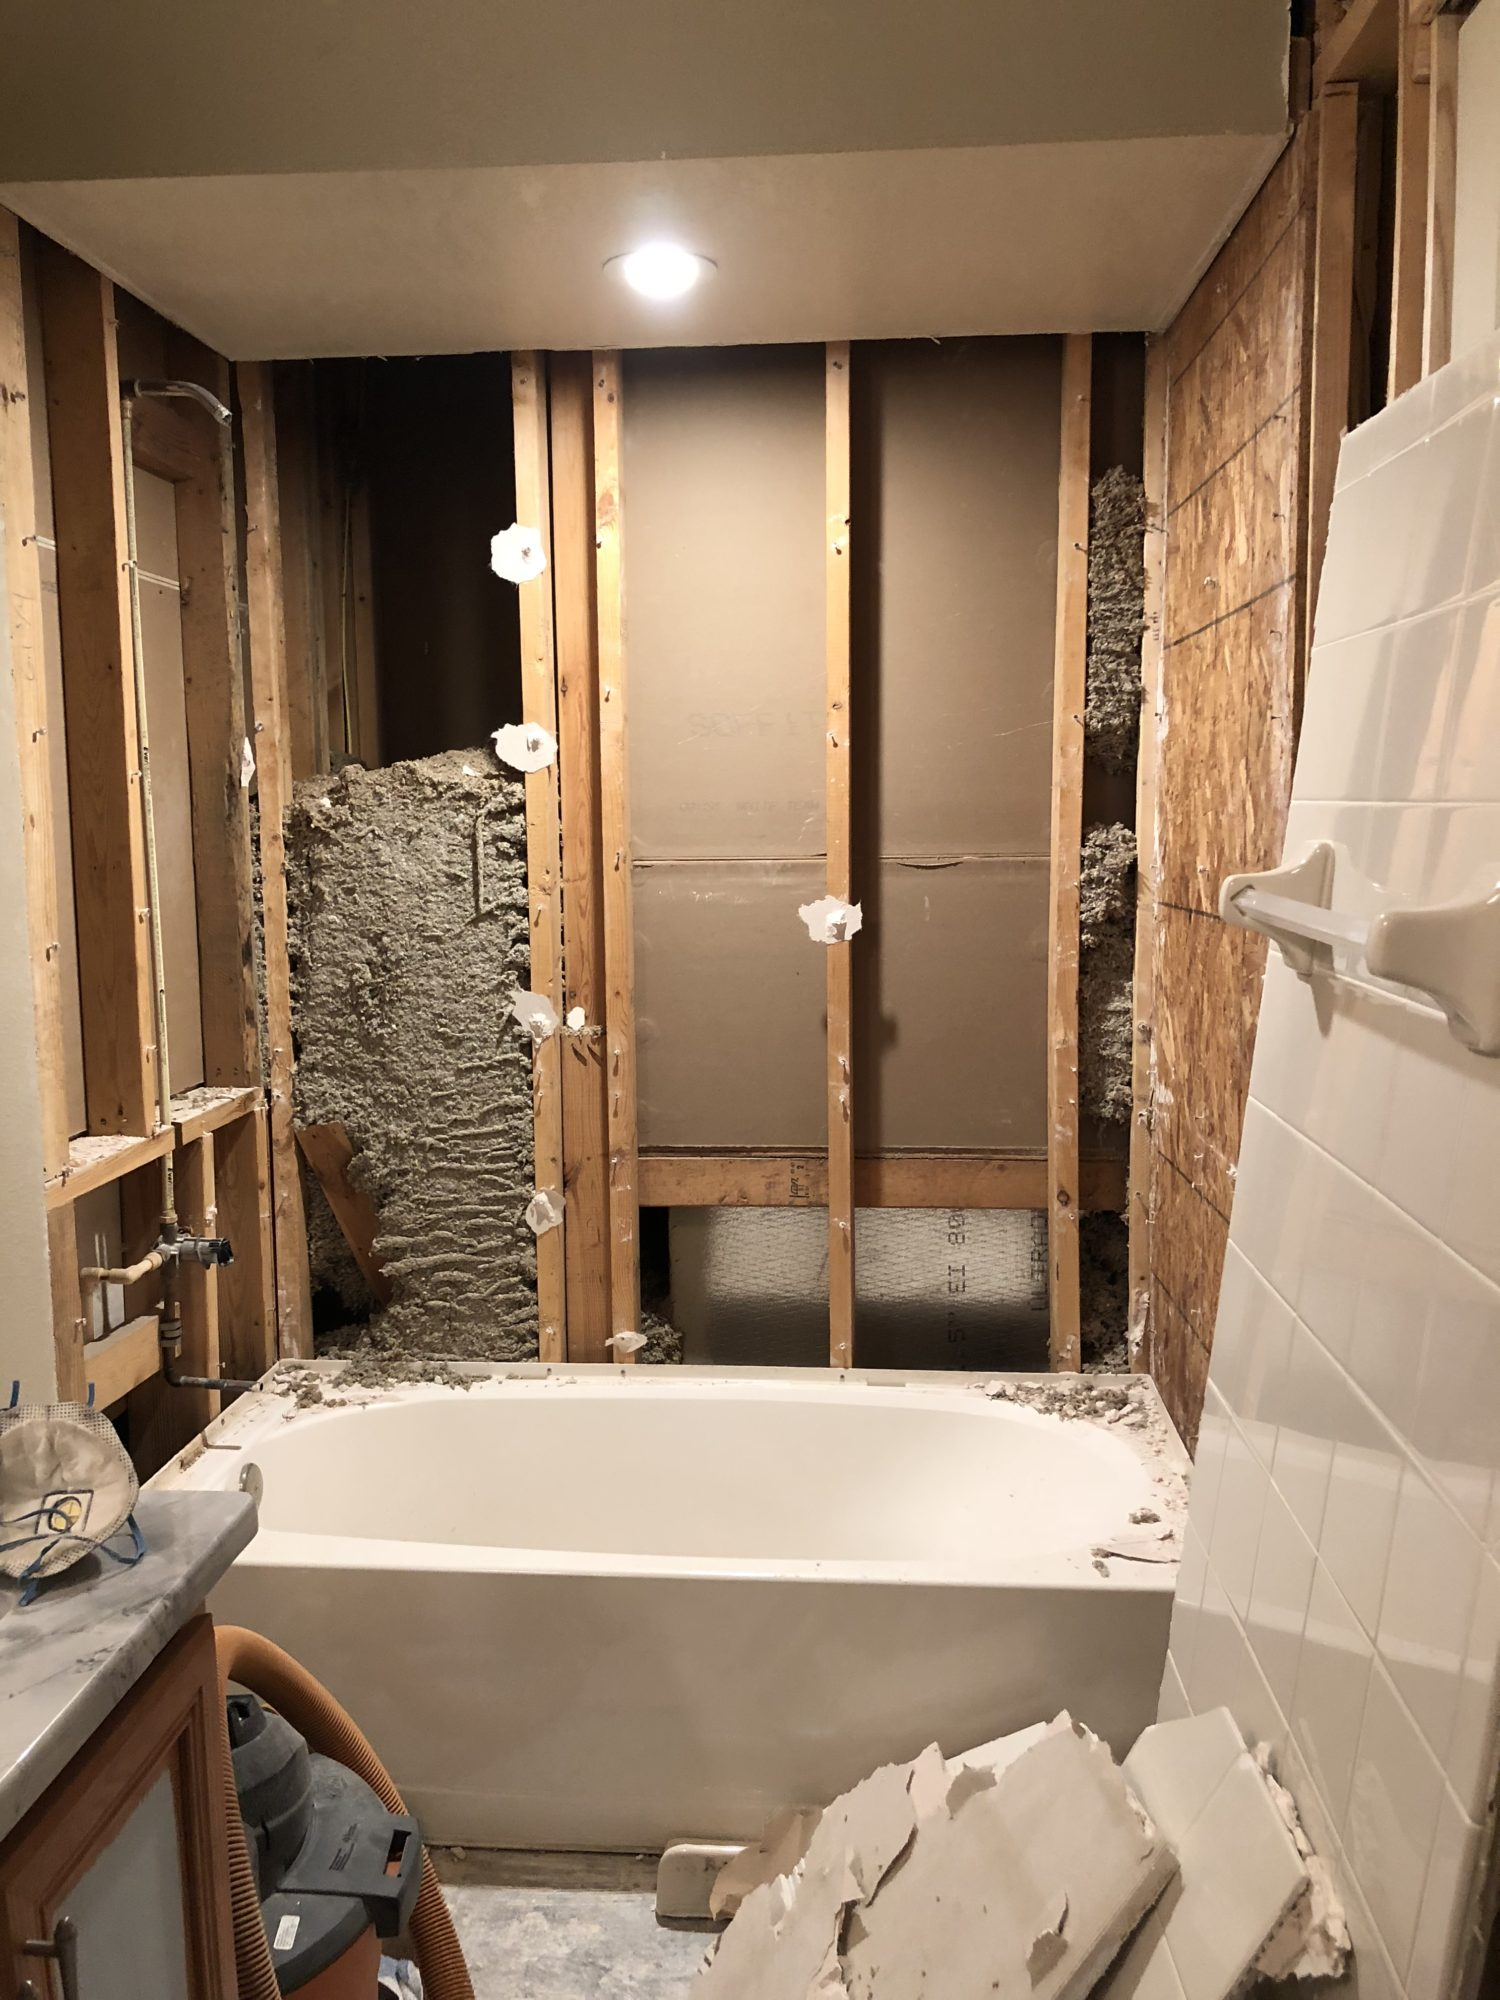 Bathroom Demo